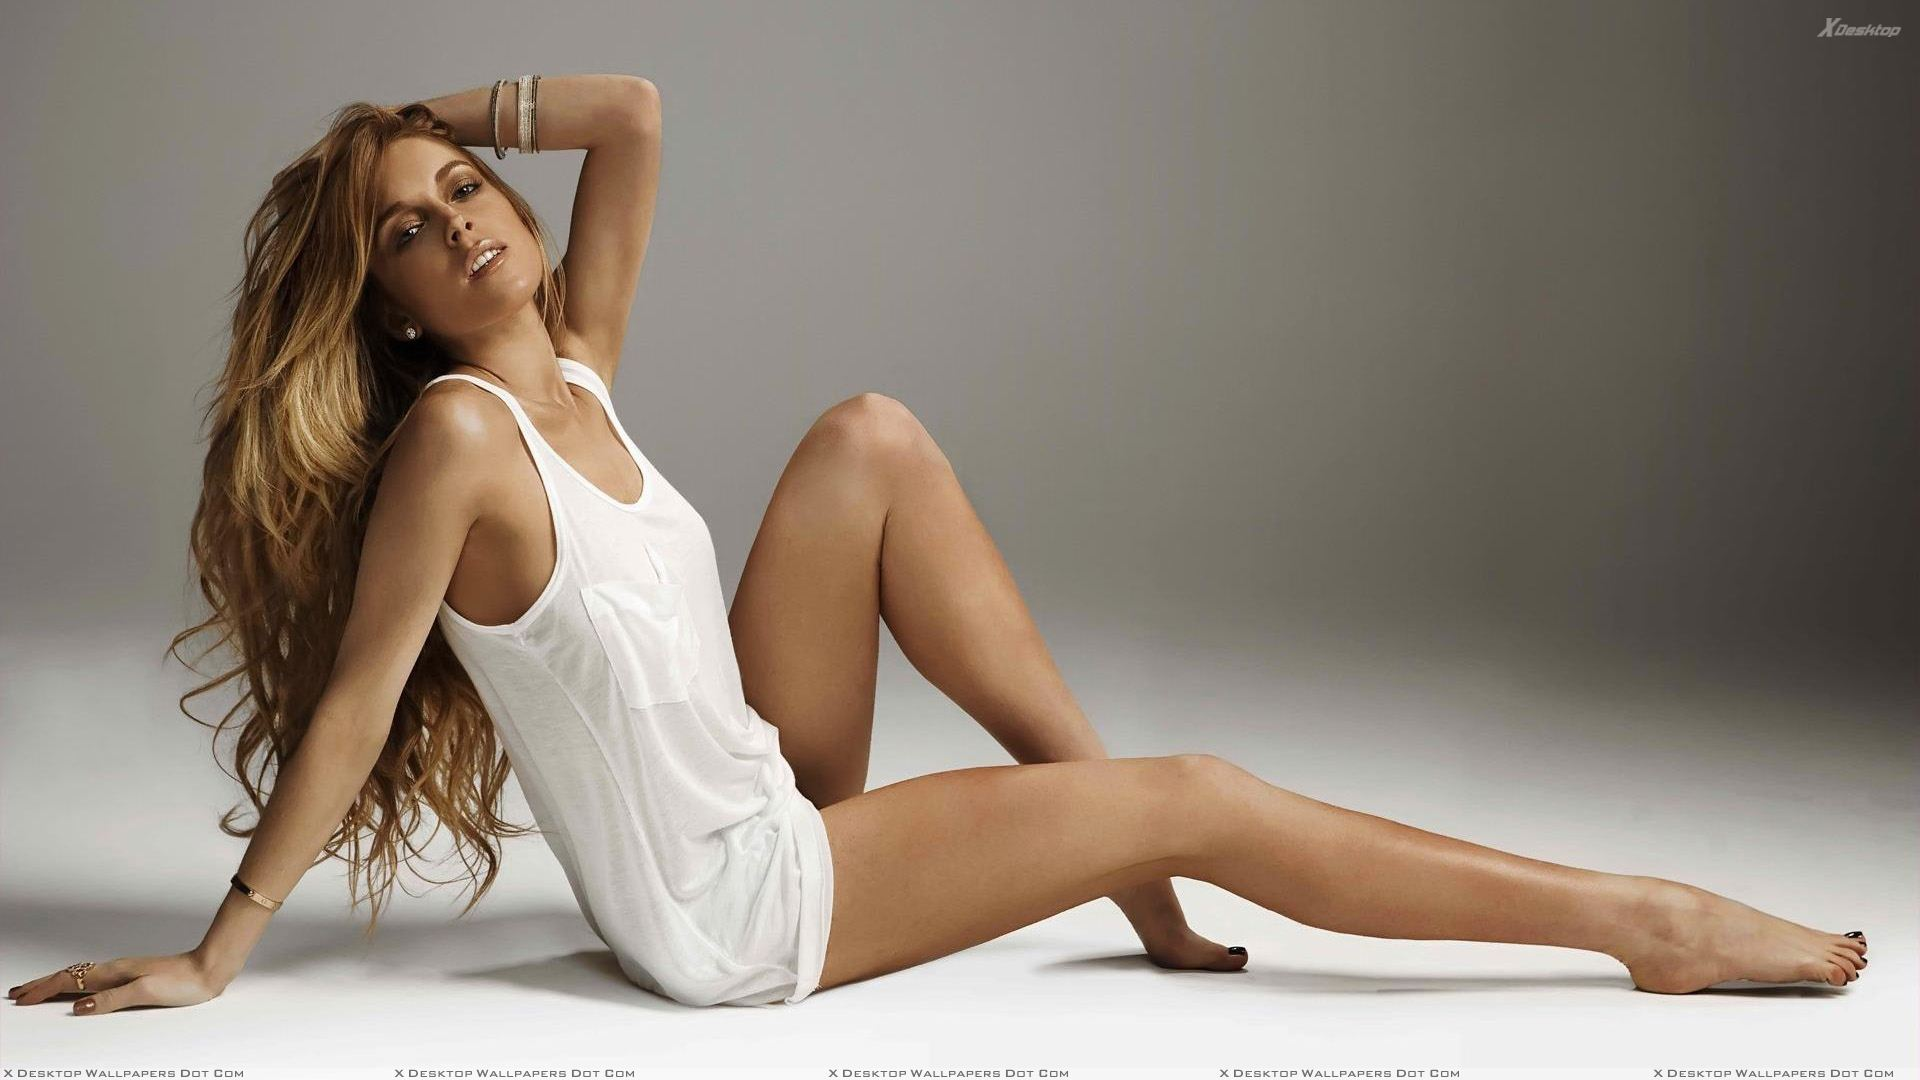 lindsay lohan sitting pose in white top looking at camera